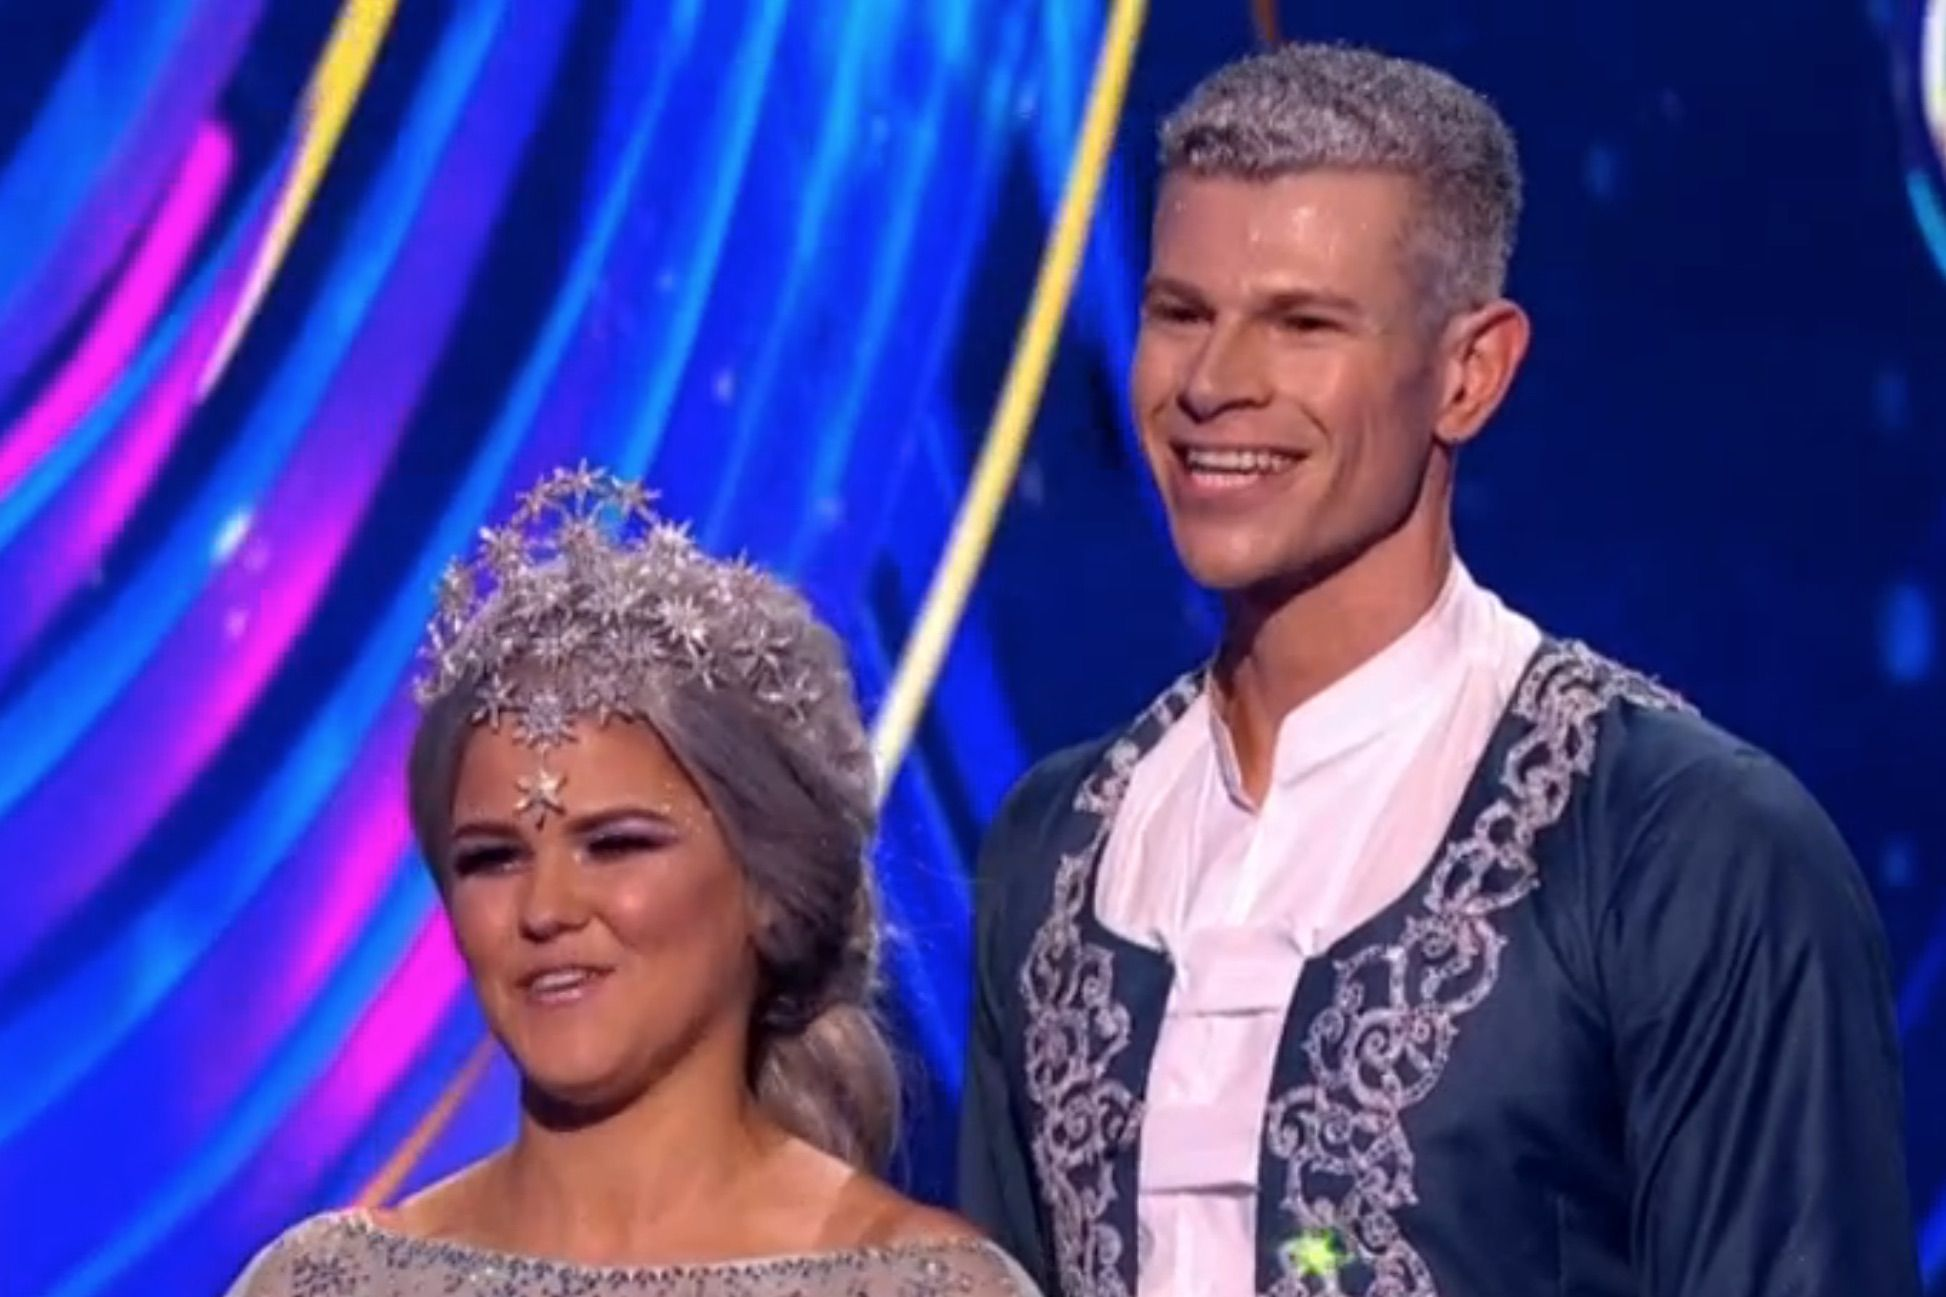 Dancing on Ice's Saara Alto sang during her musical week number — and fans LOVED IT